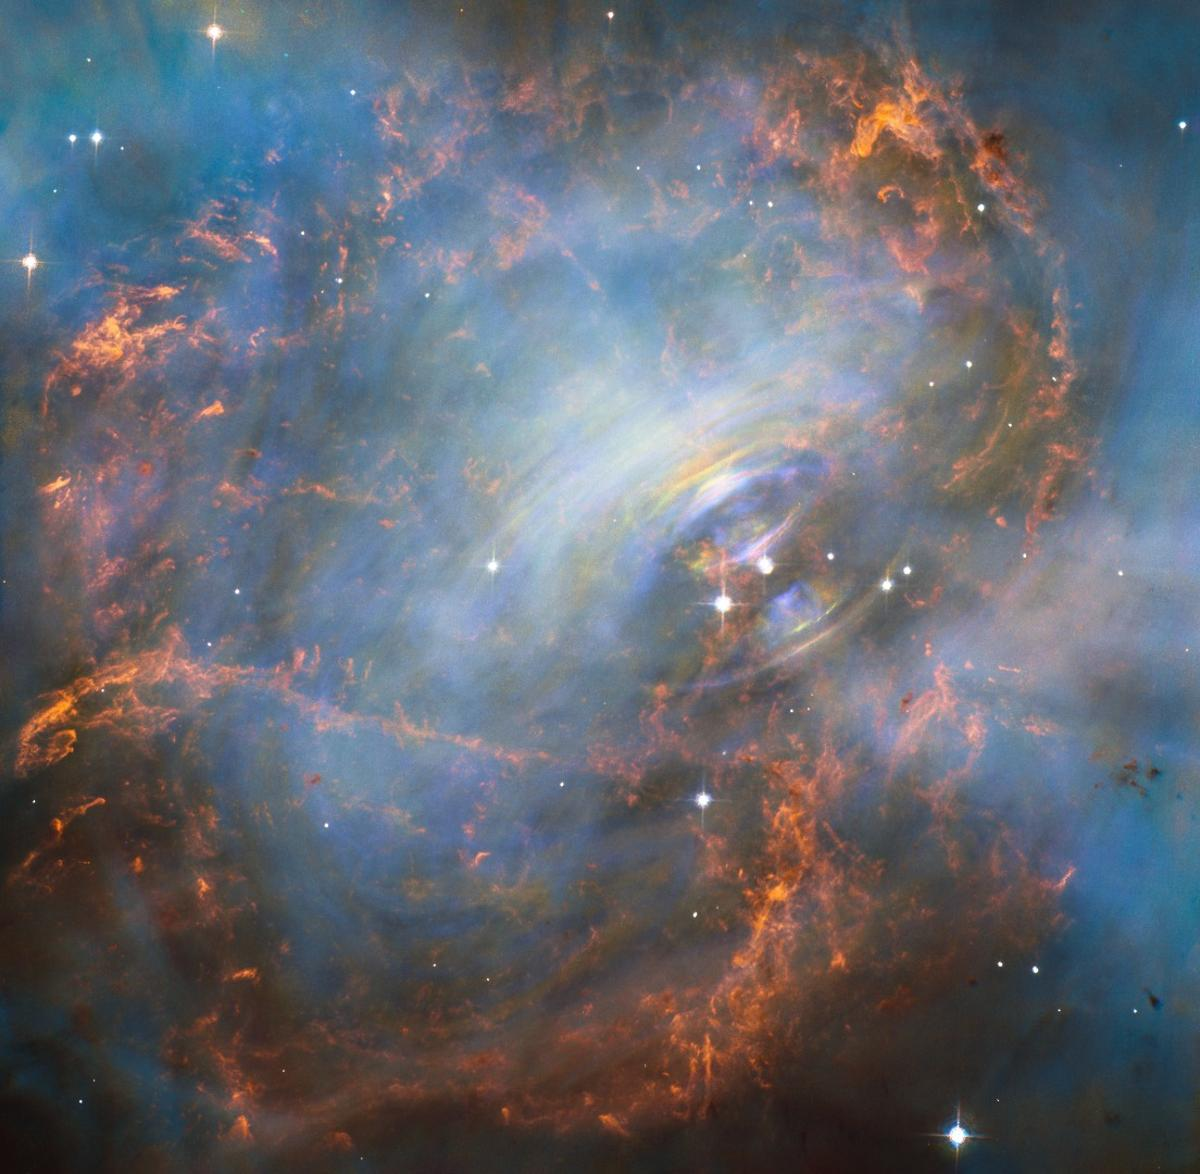 View of the Crab Nebula made up of three separate Hubble images